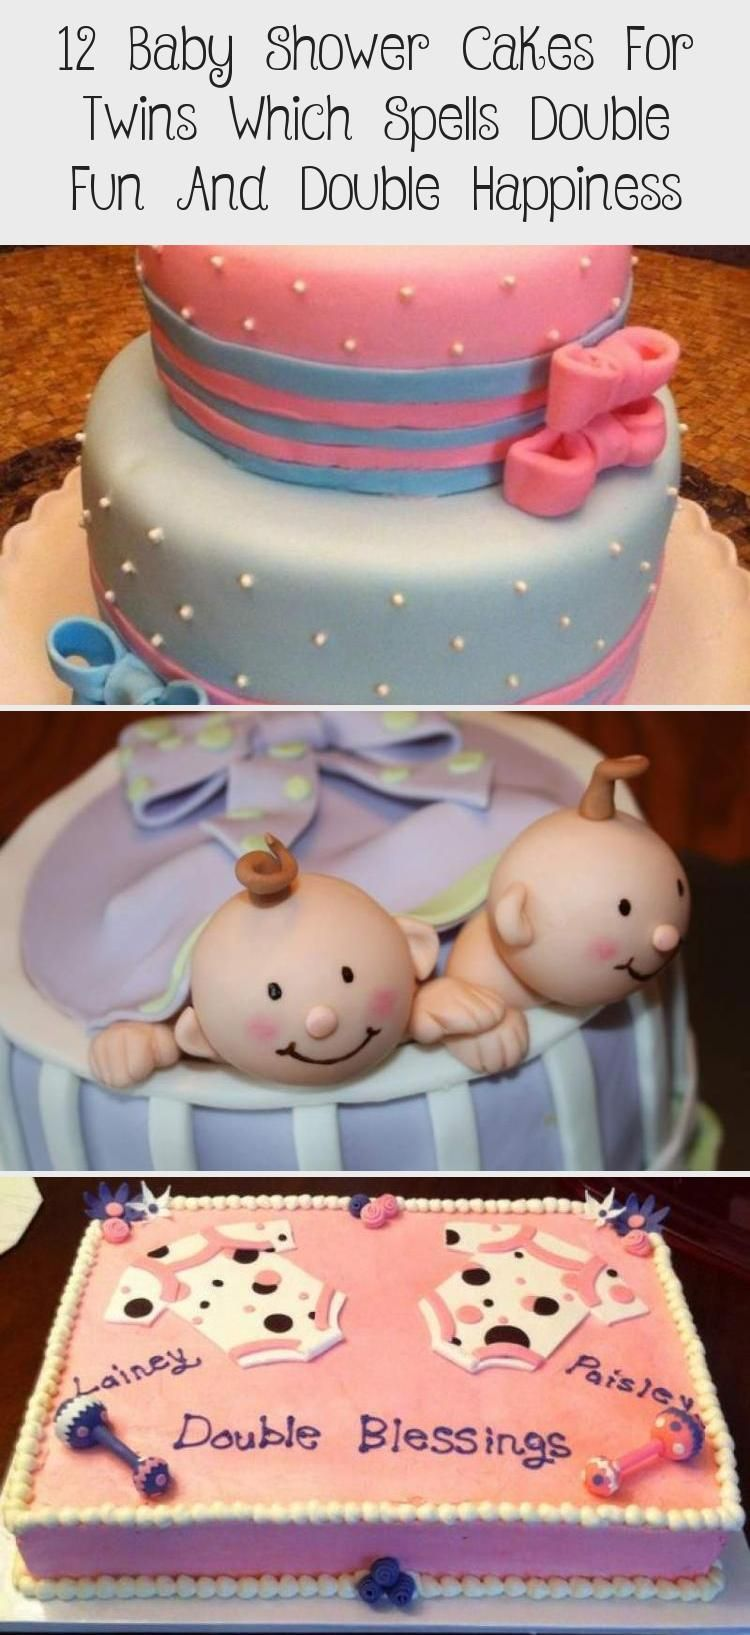 12 baby shower cakes for twins that mean double fun and double happiness - fitness for health and di...